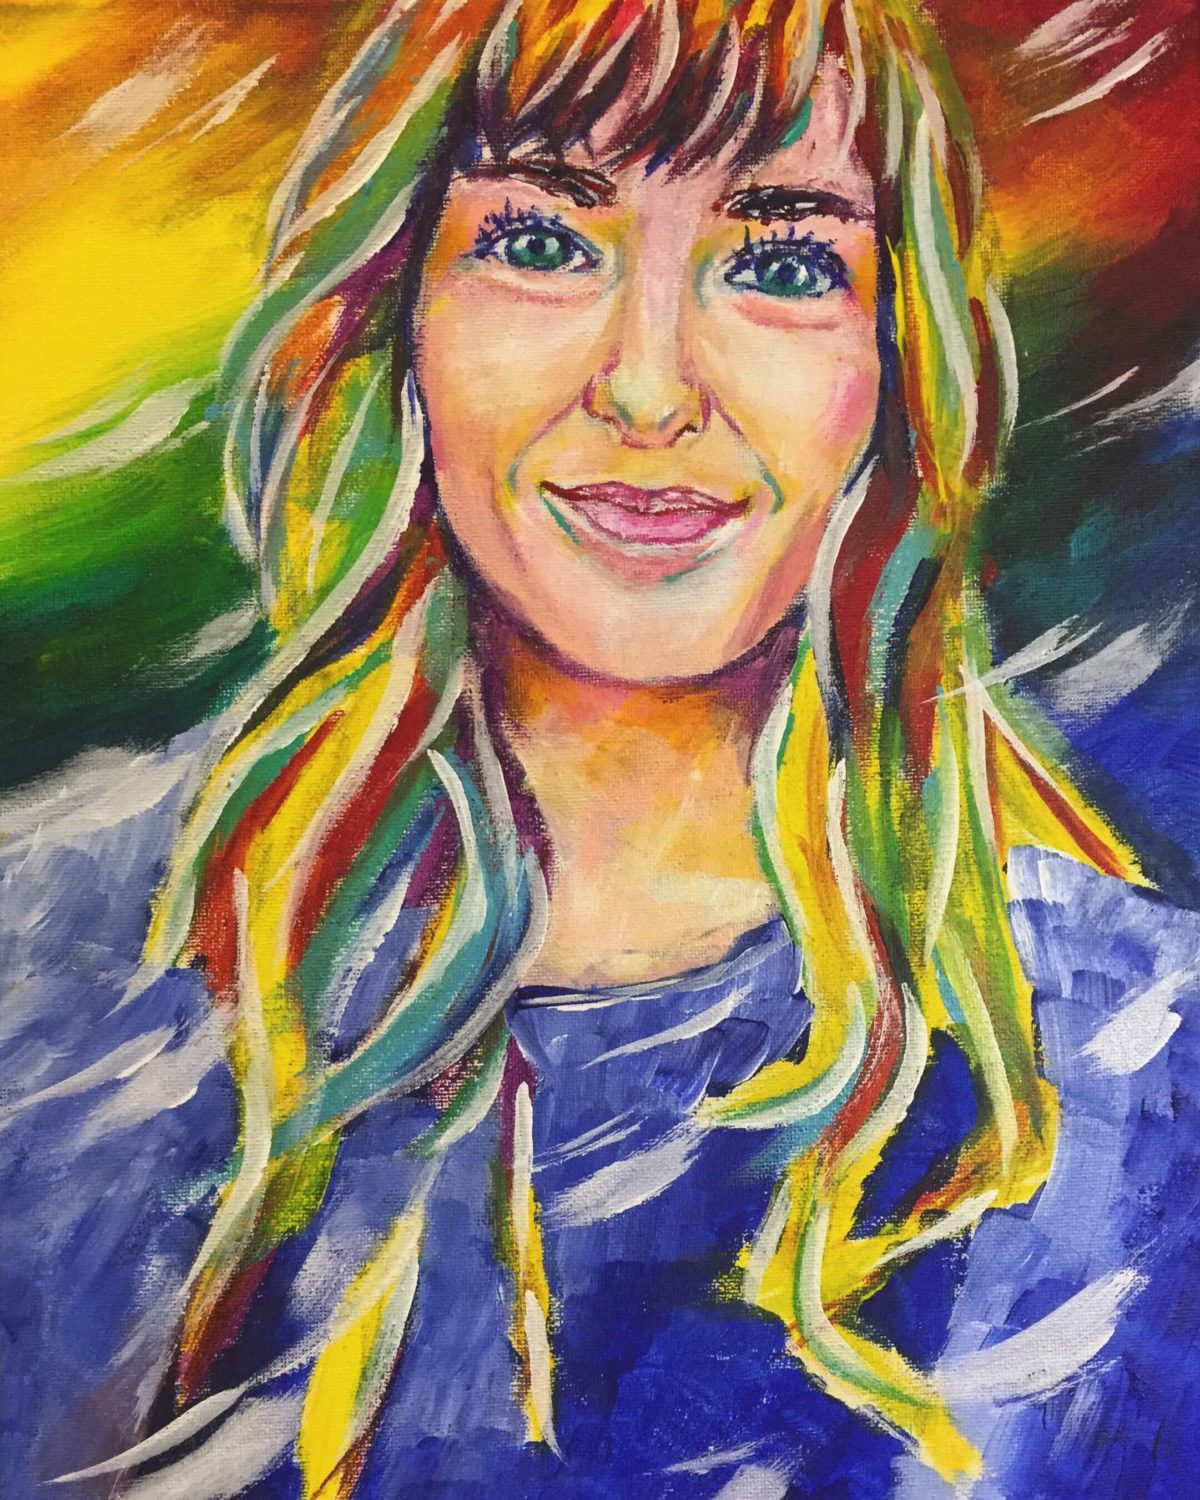 Painting of Amanda 11x14 Acrylic on Canvas by Taylor Wise